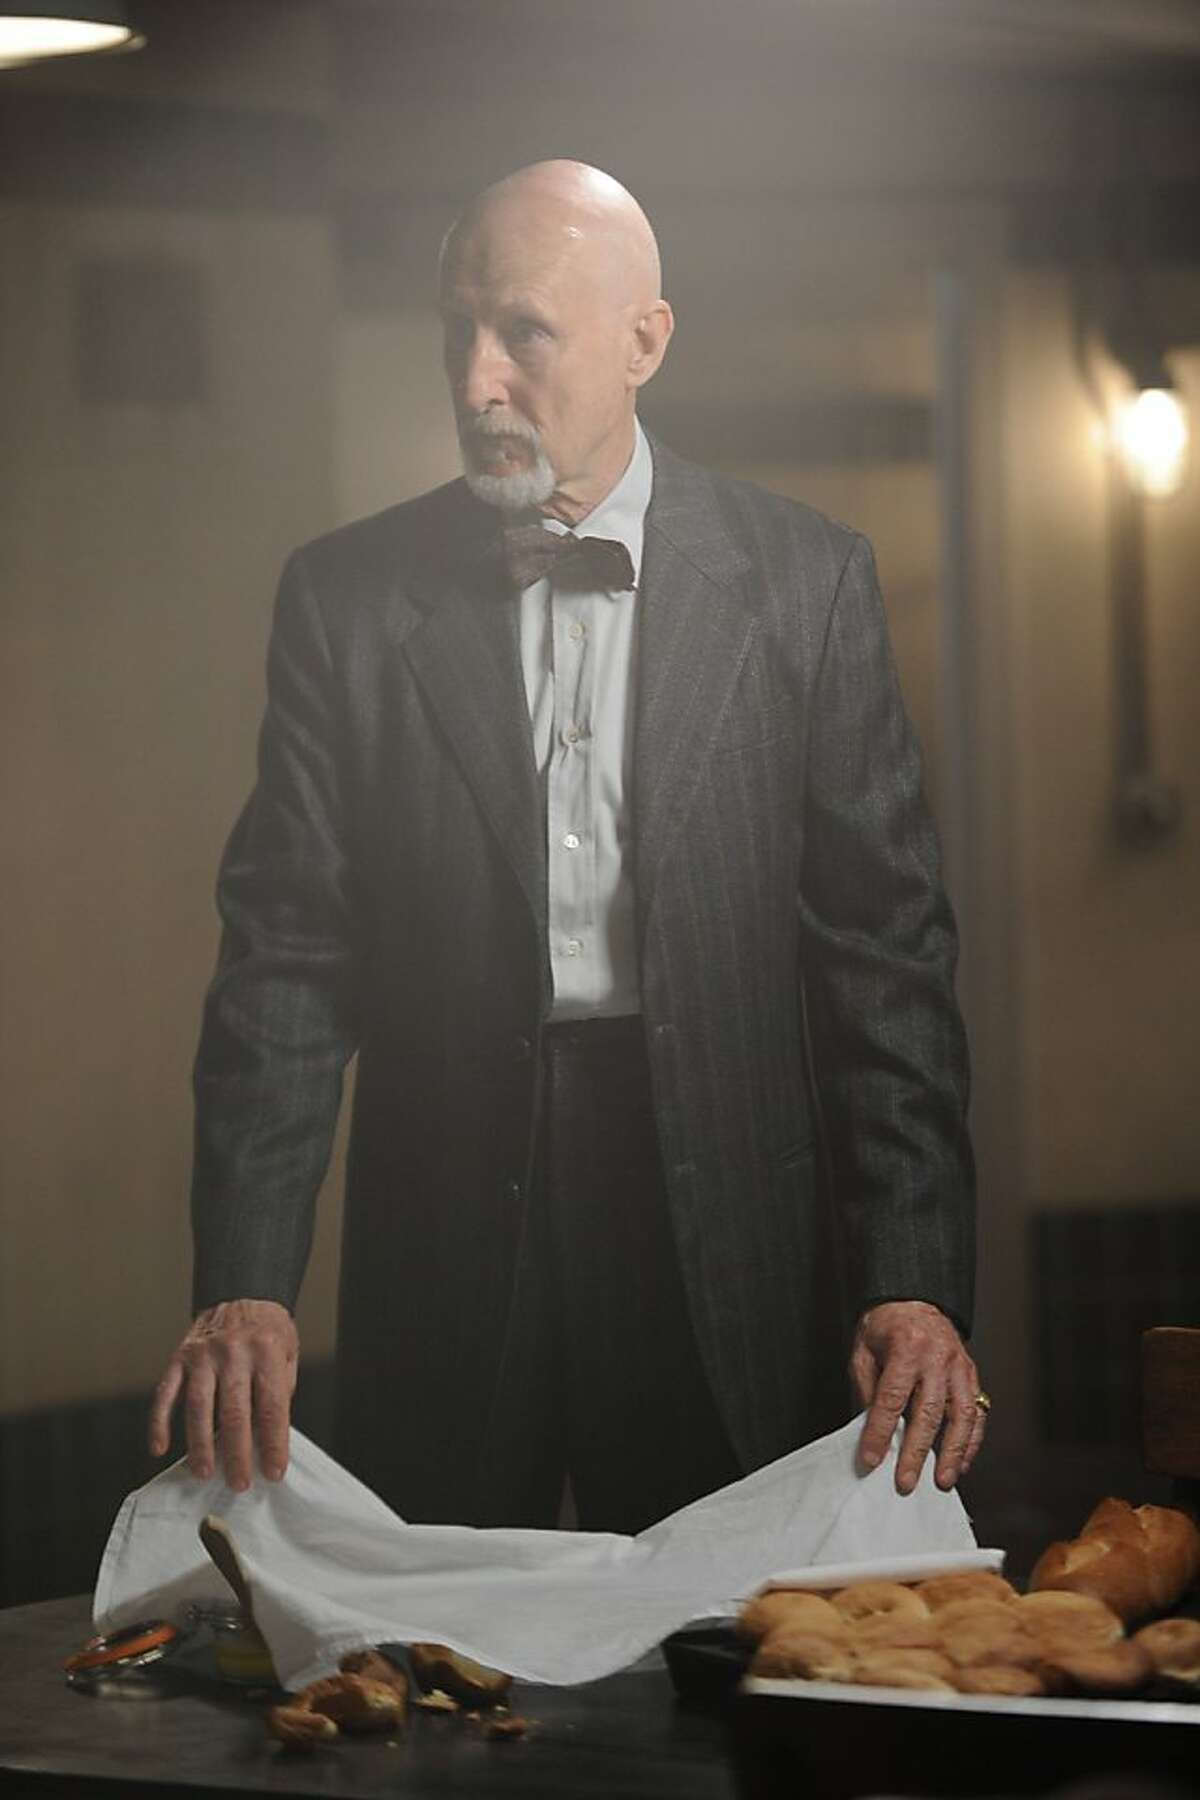 AMERICAN HORROR STORY Tricks and Treats -- Episode 202, Wednesday, October 24, 10:00 pm e/p) -- Pictured: James Cromwell as Dr. Arden -- CR: Michael Becker/FX